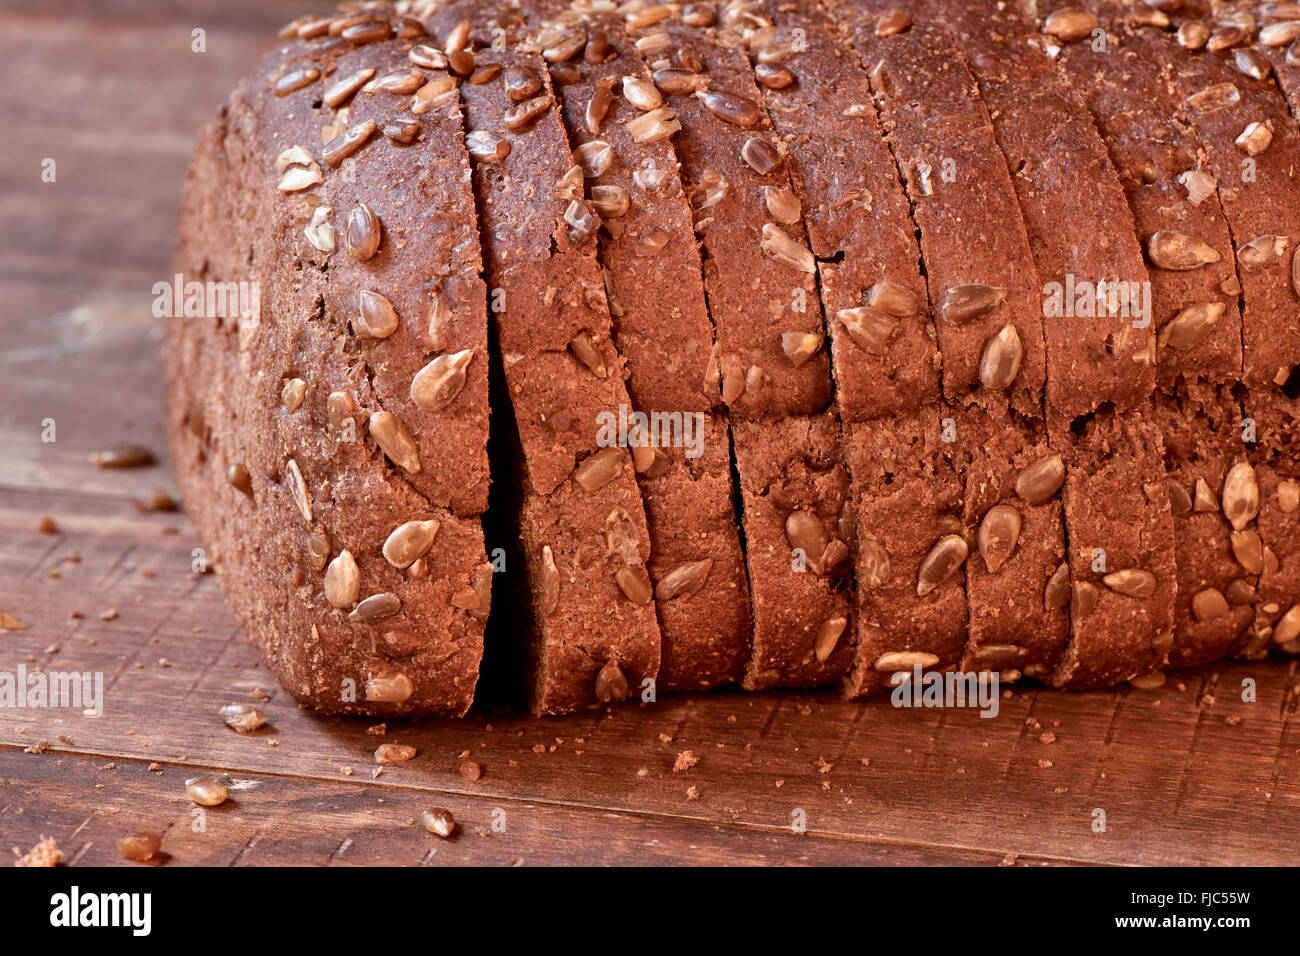 closeup of a sliced loaf of rye bread topped with sunflower seeds on a rustic wooden surface Stock Photo